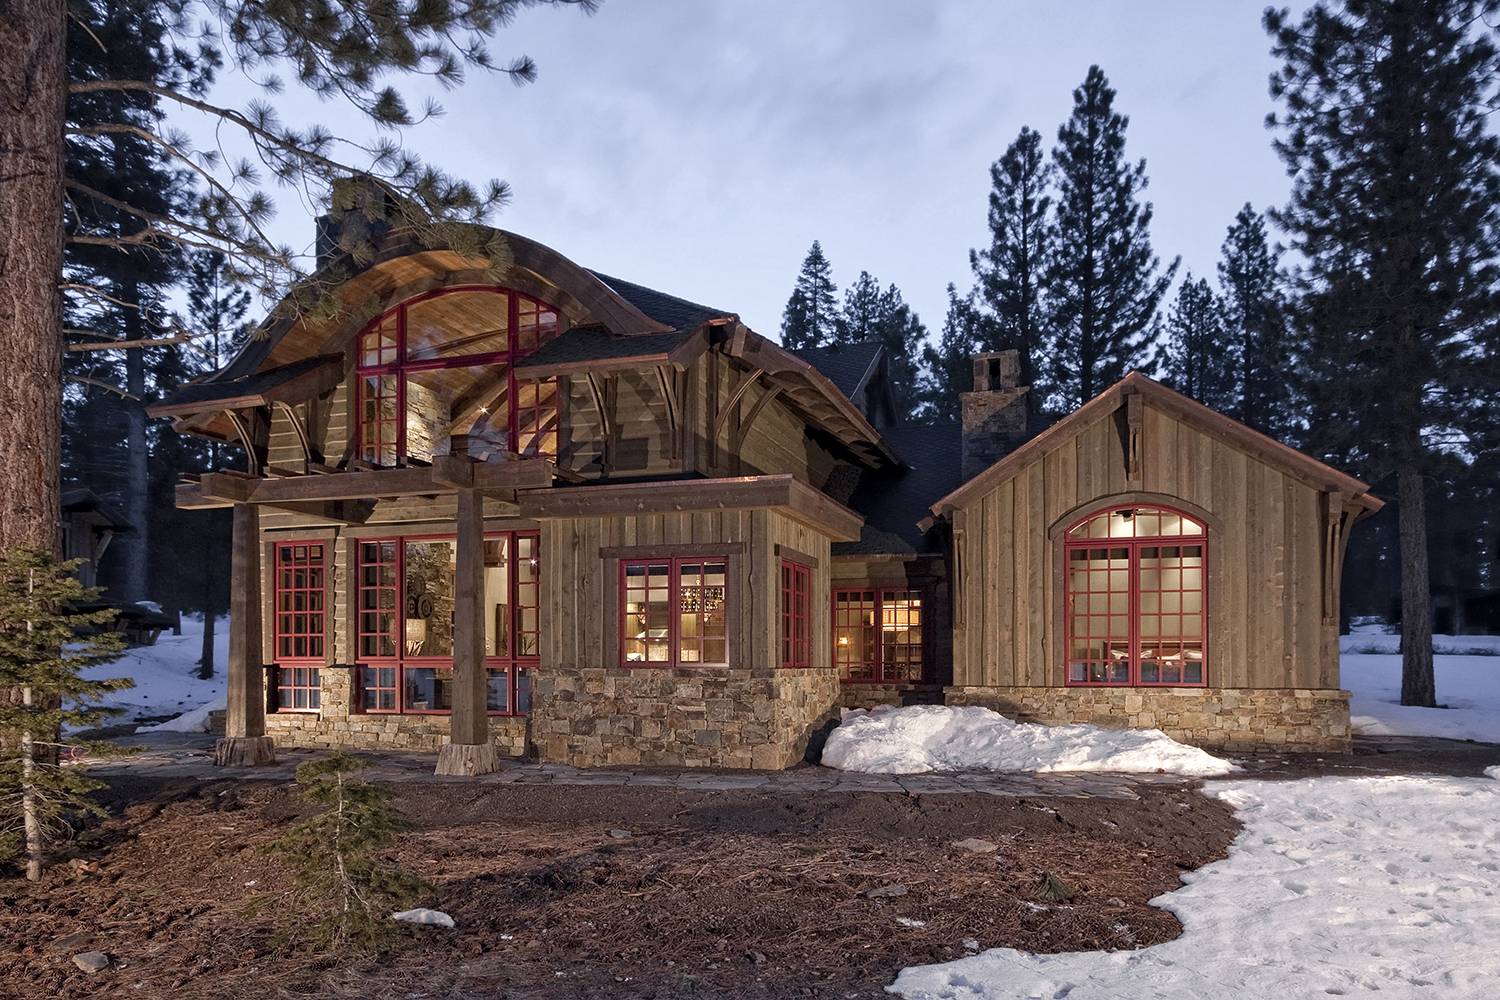 Lot 296_Exterior_Rear View_Arched Ceiling Highlight_masonry_Wood Siding.jpg